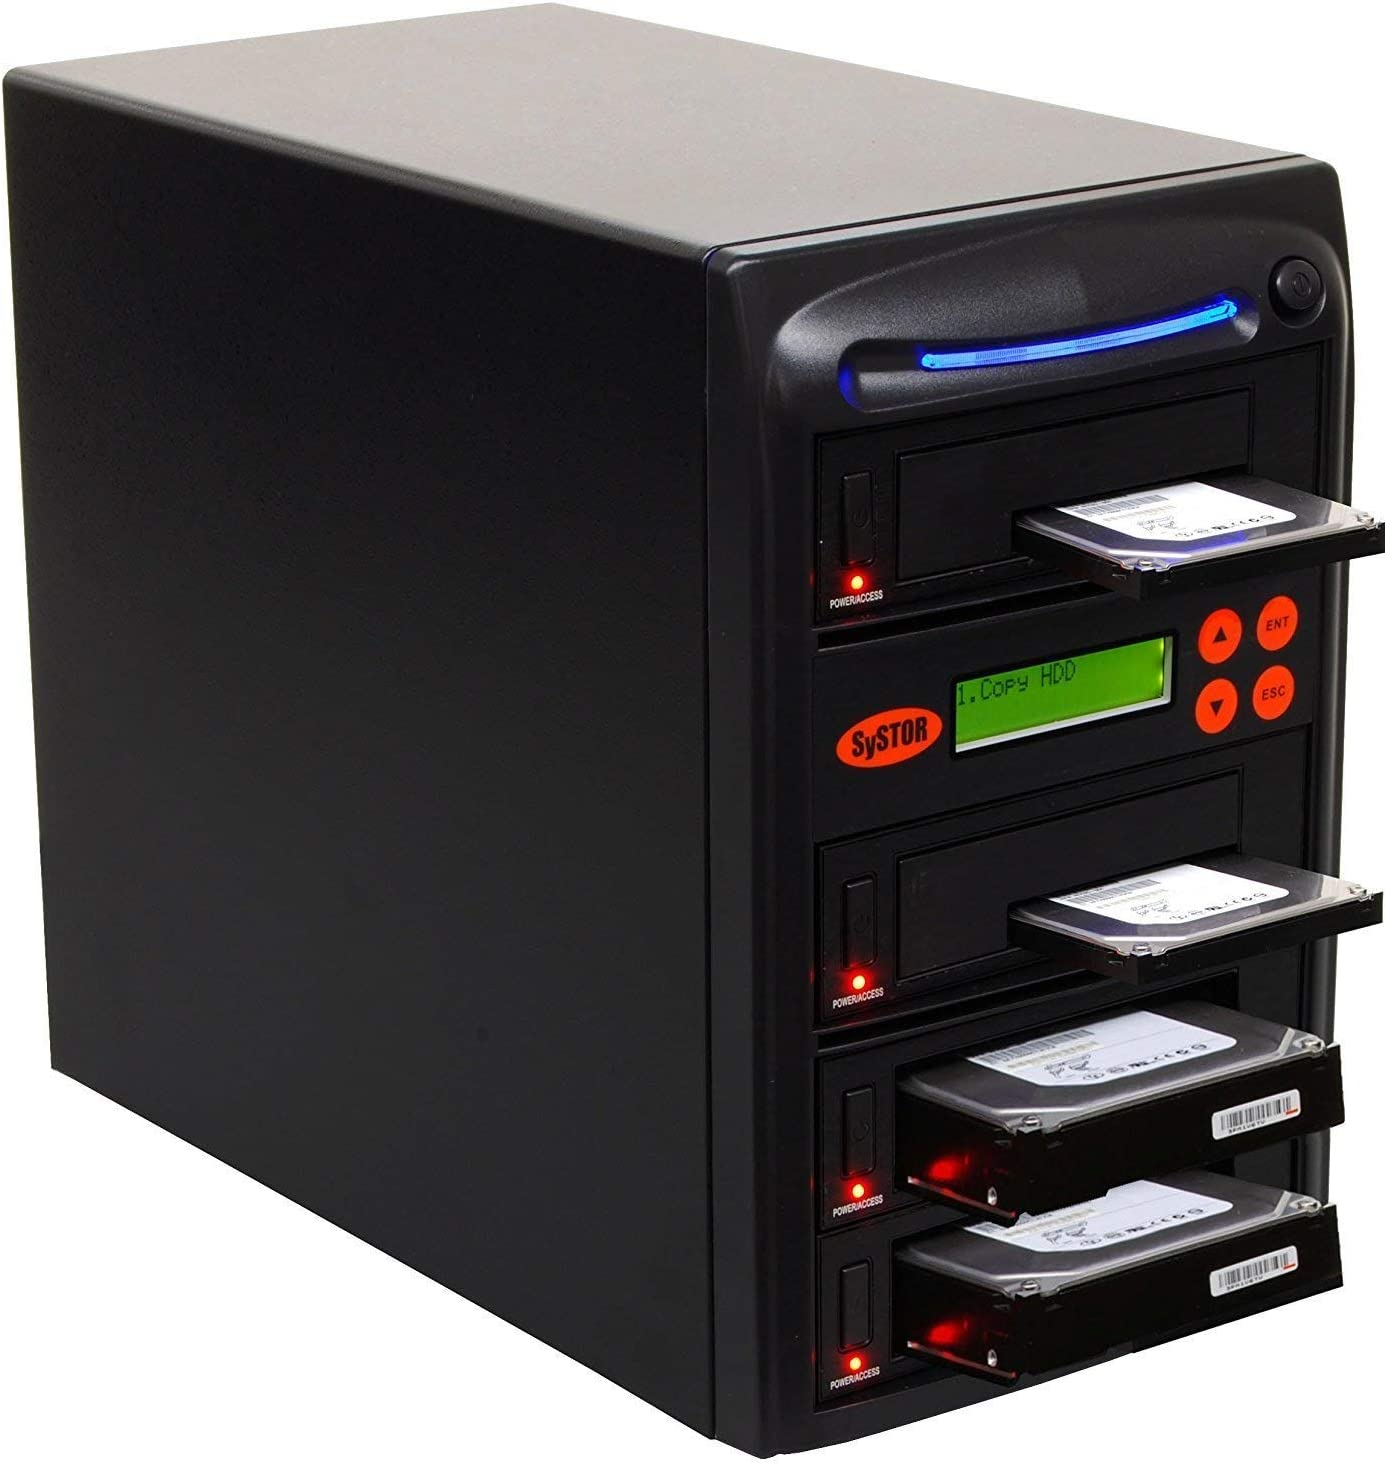 SySTOR 1 to 3 SATA 600MB/s HDD SSD Duplicator/Sanitizer - 3.5